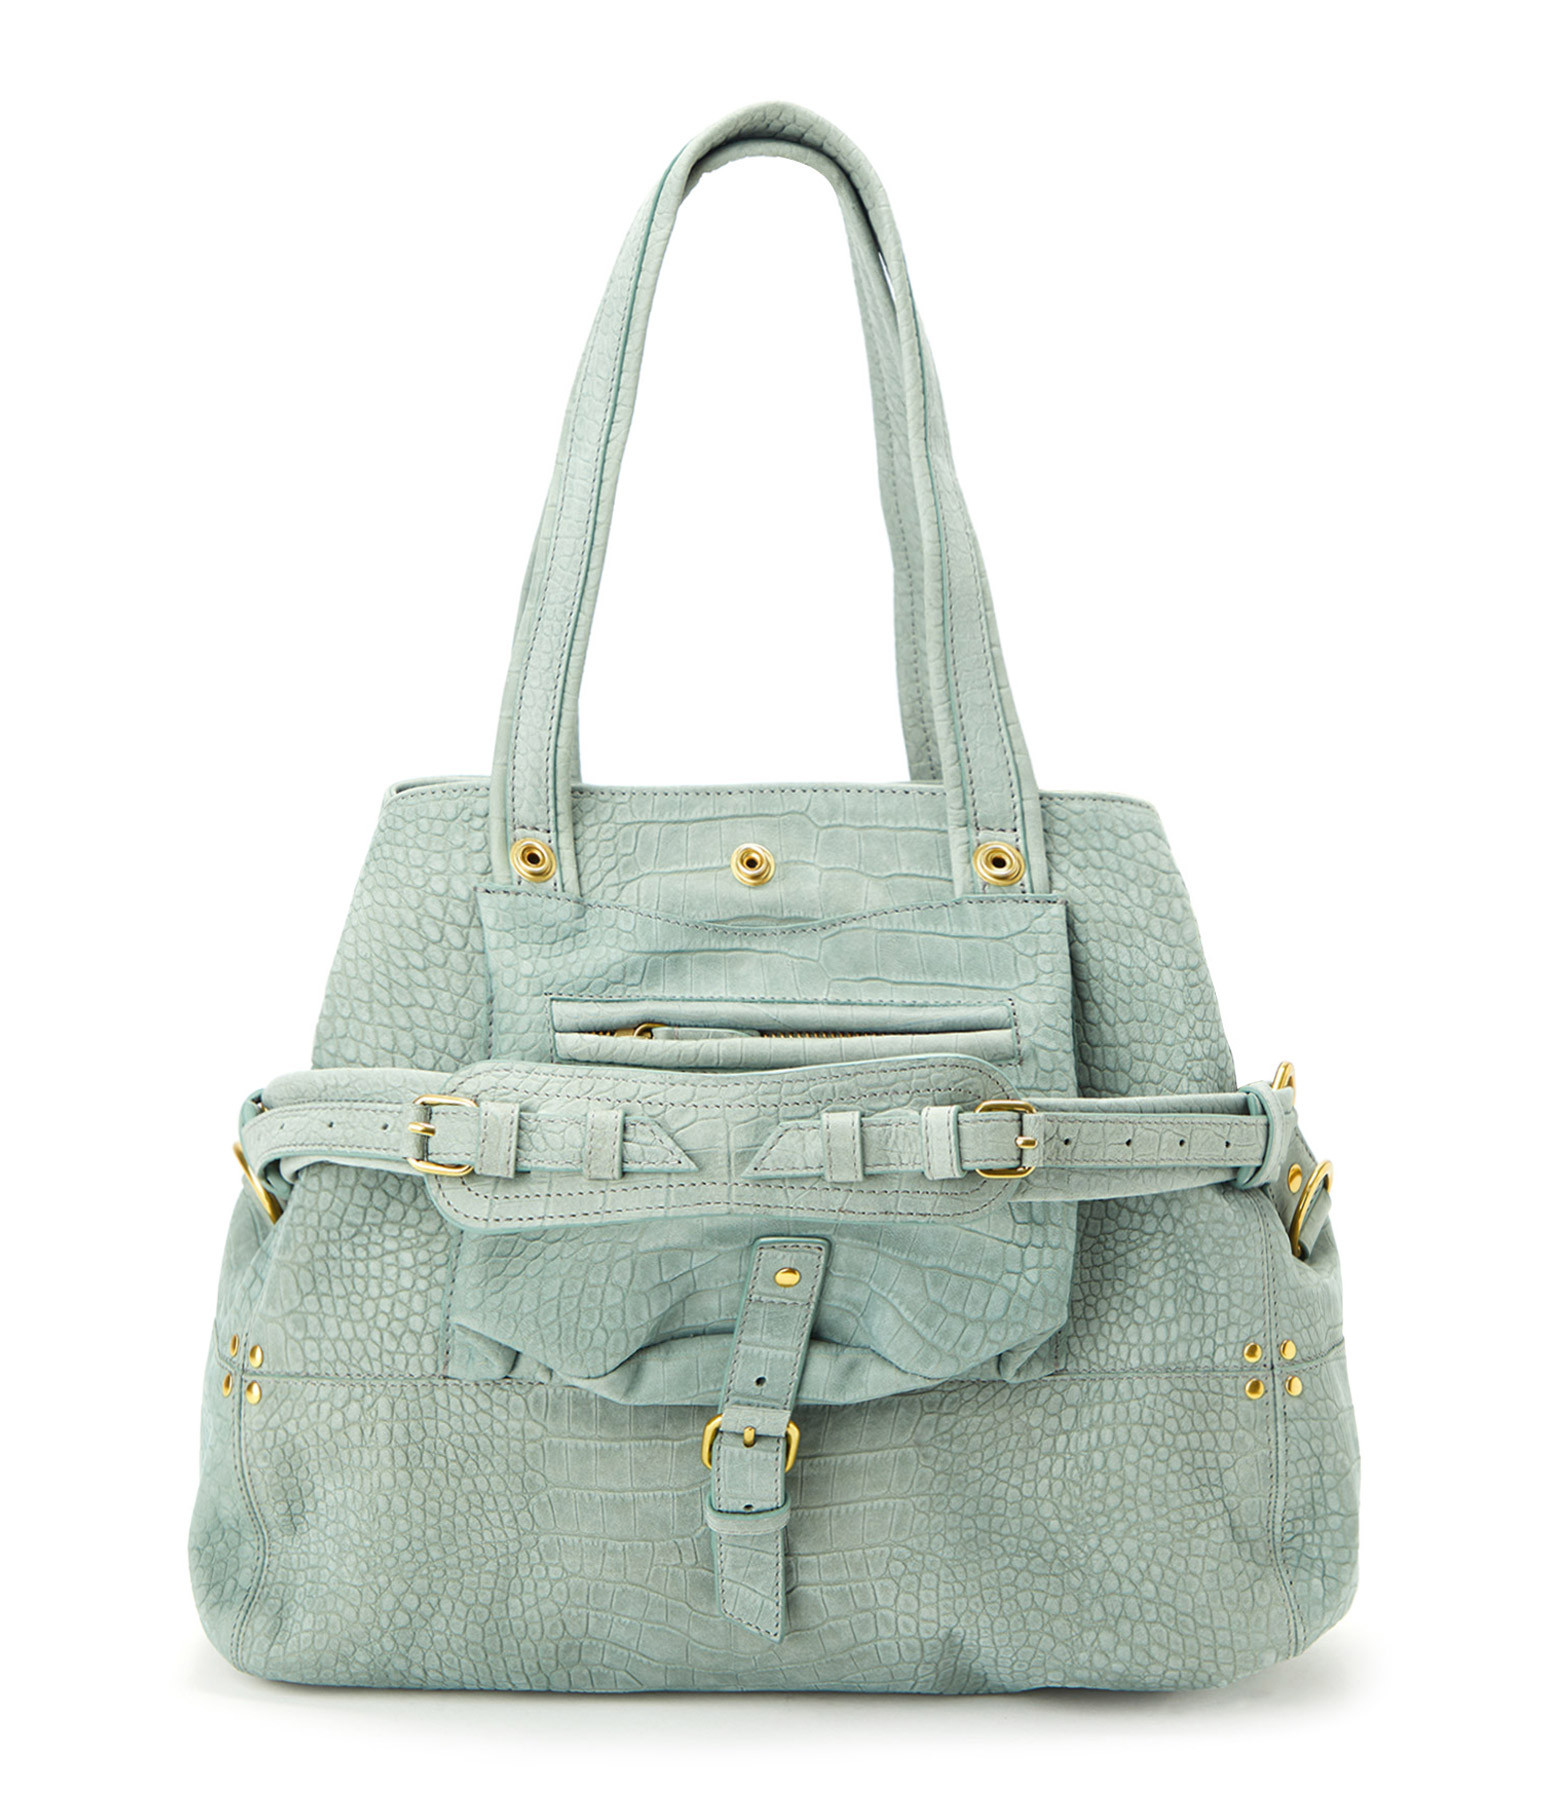 JEROME DREYFUSS - Sac Billy M Veau Effet Croco Lichen